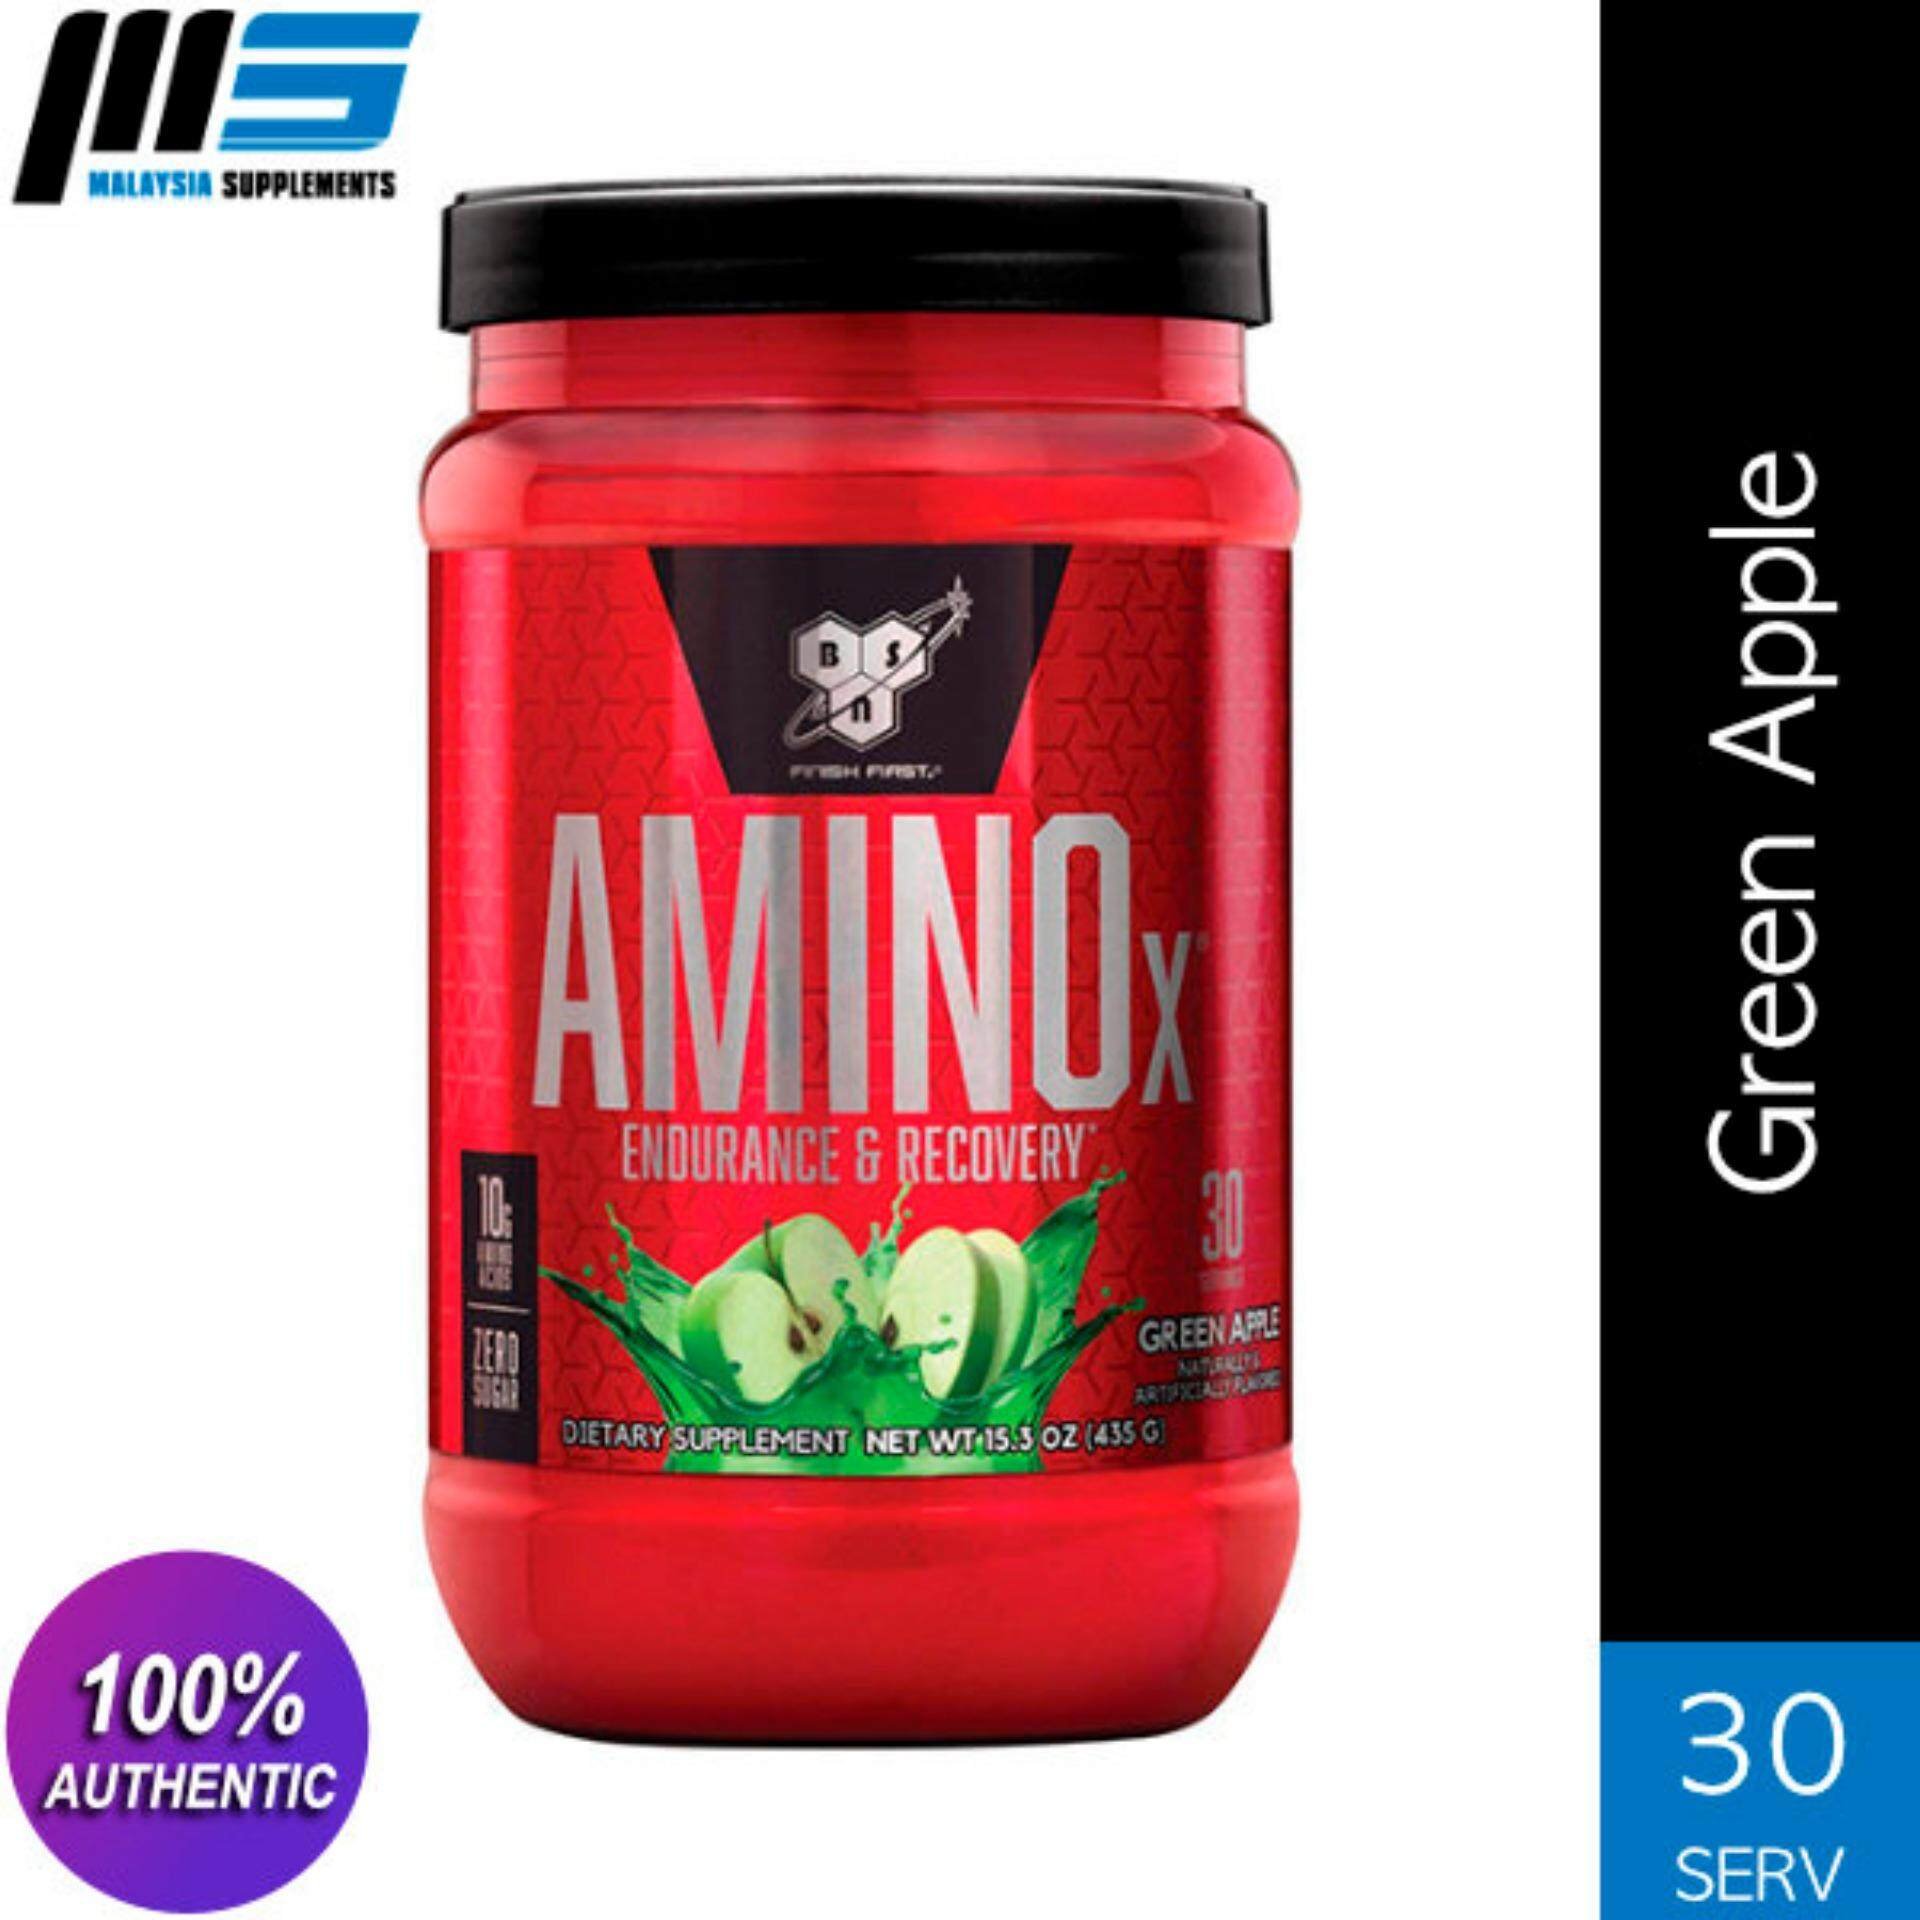 Bsn Amino X, Green Apple, 30 Servings By Malaysia Supplements.